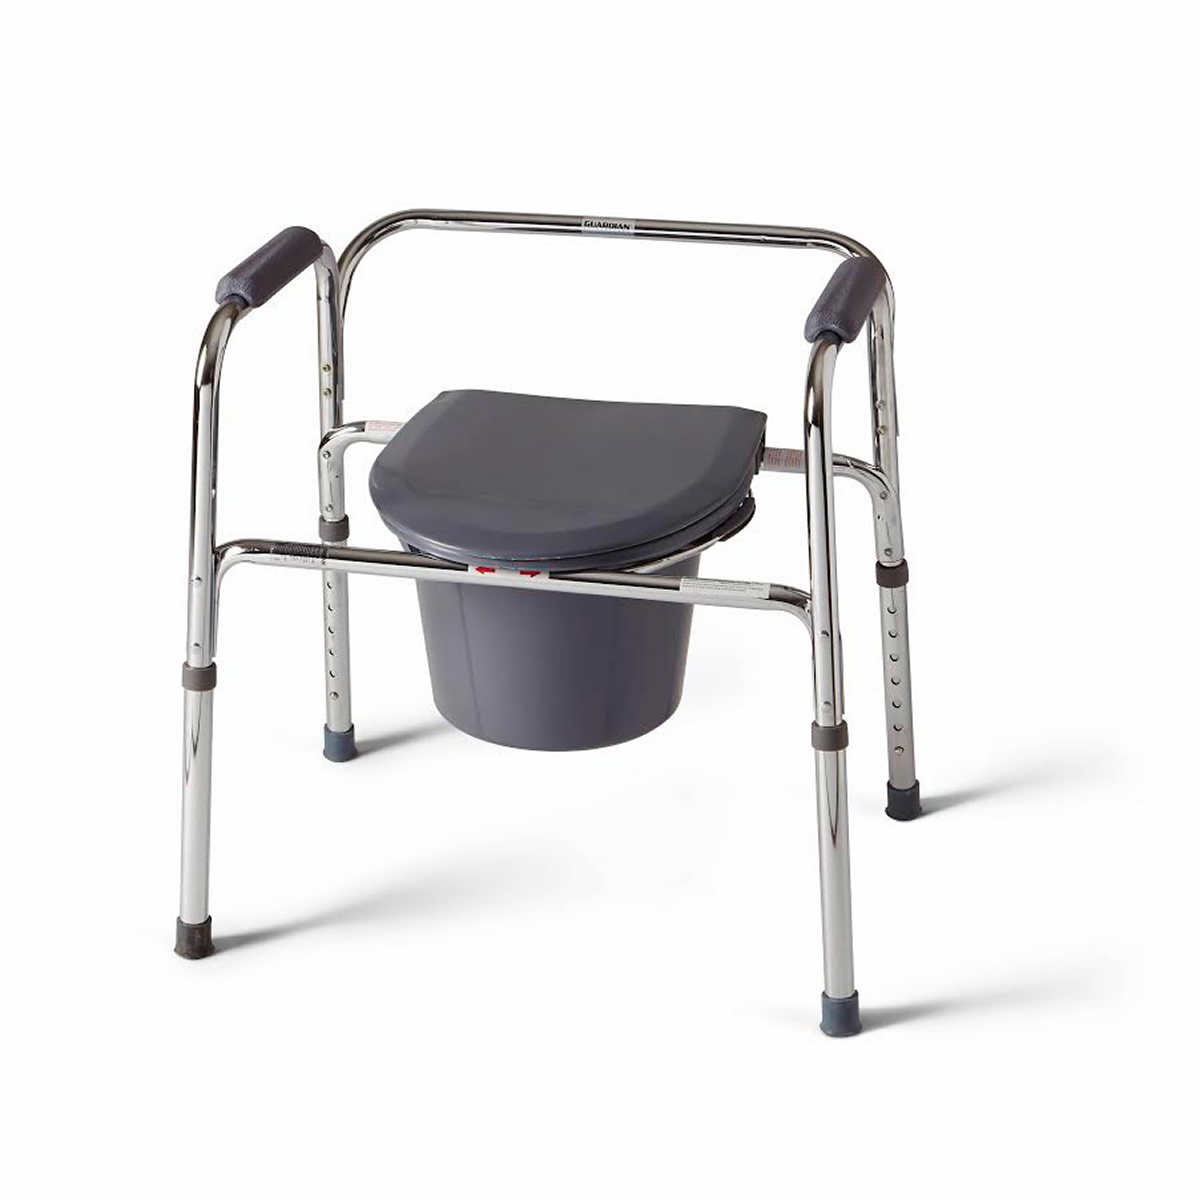 Miraculous Medline Guardian 3 In 1 Steel Commode Walmart Canada Gmtry Best Dining Table And Chair Ideas Images Gmtryco